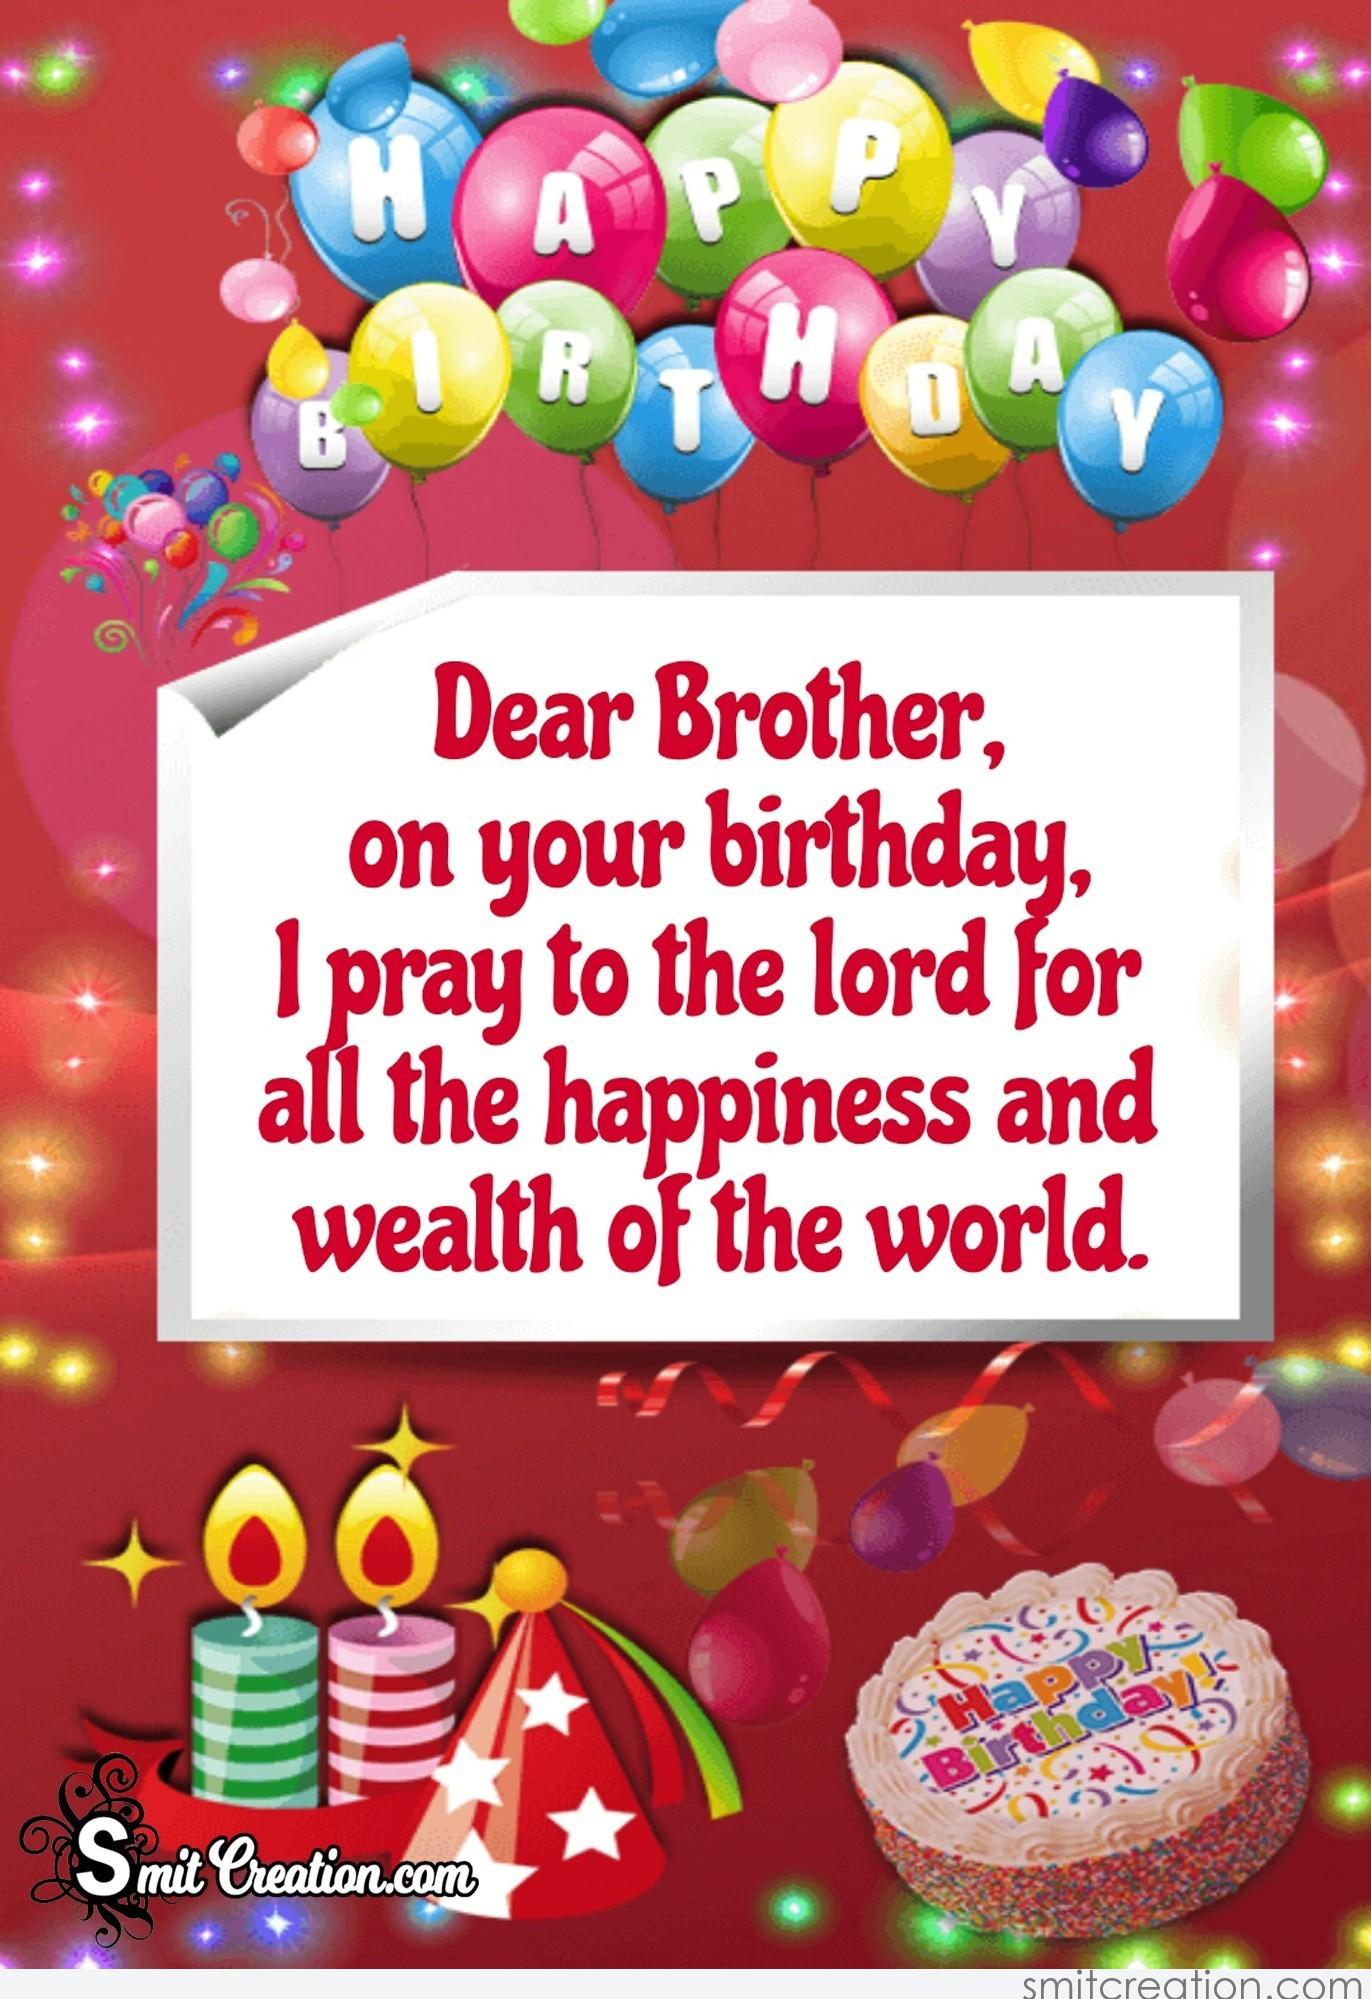 Happy birthday brother smitcreation dear brother on your birthday i pray to the lord for all the happiness and wealth of the world happy birthday bro voltagebd Gallery